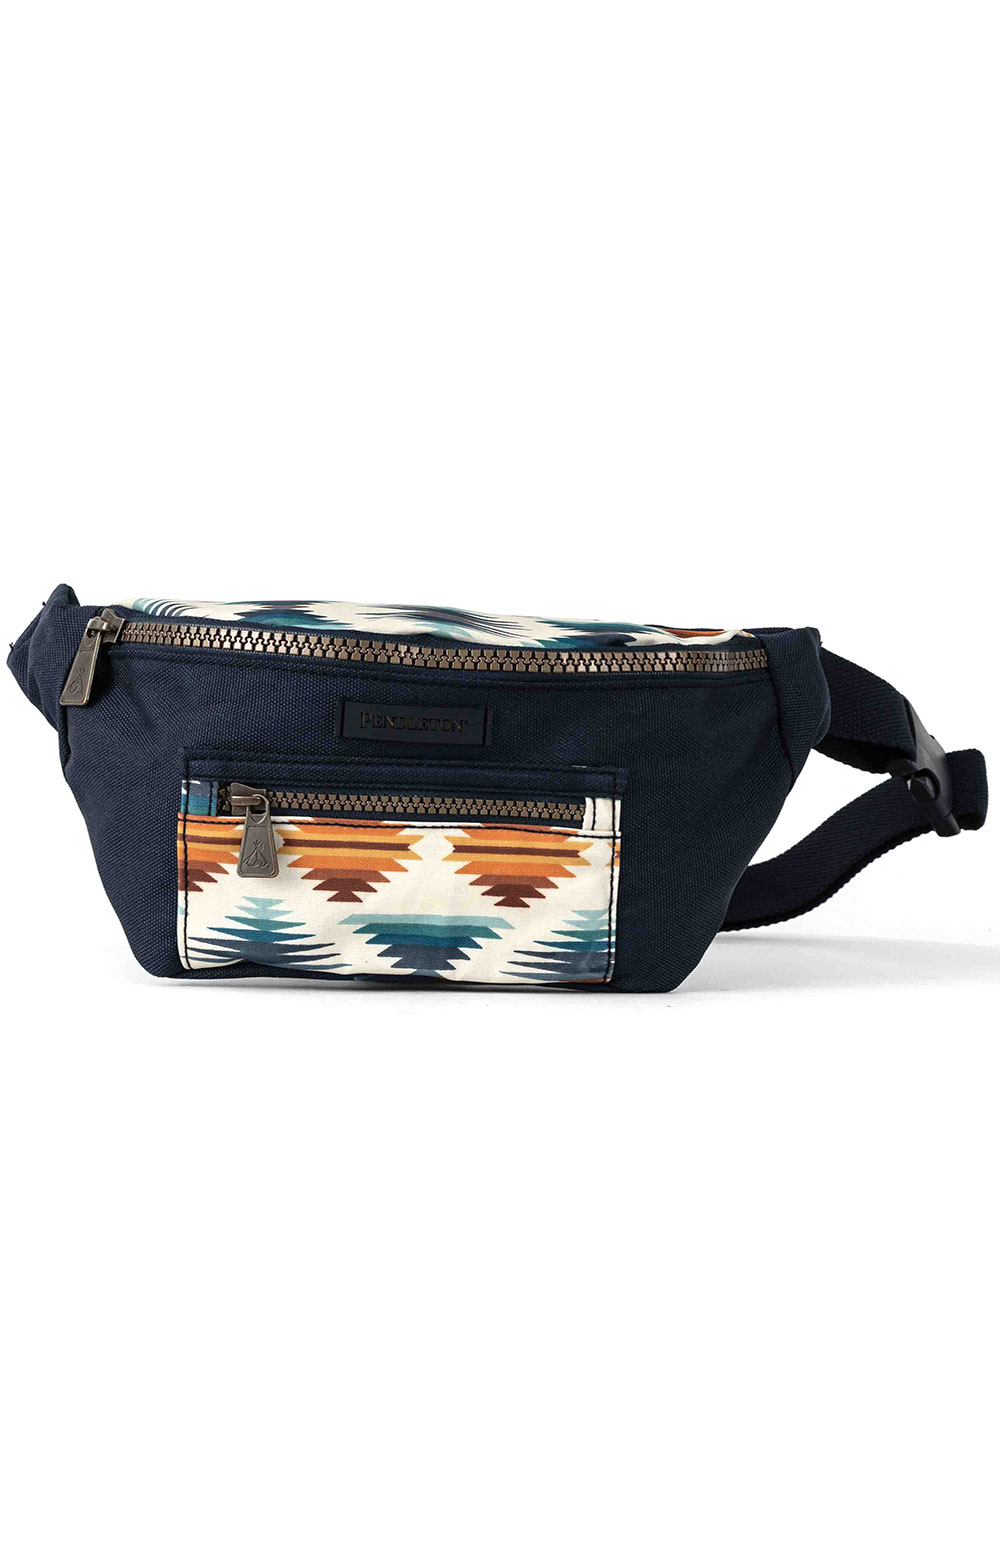 Canopy Canvas Waist Pack - Falcon Cove Sunset